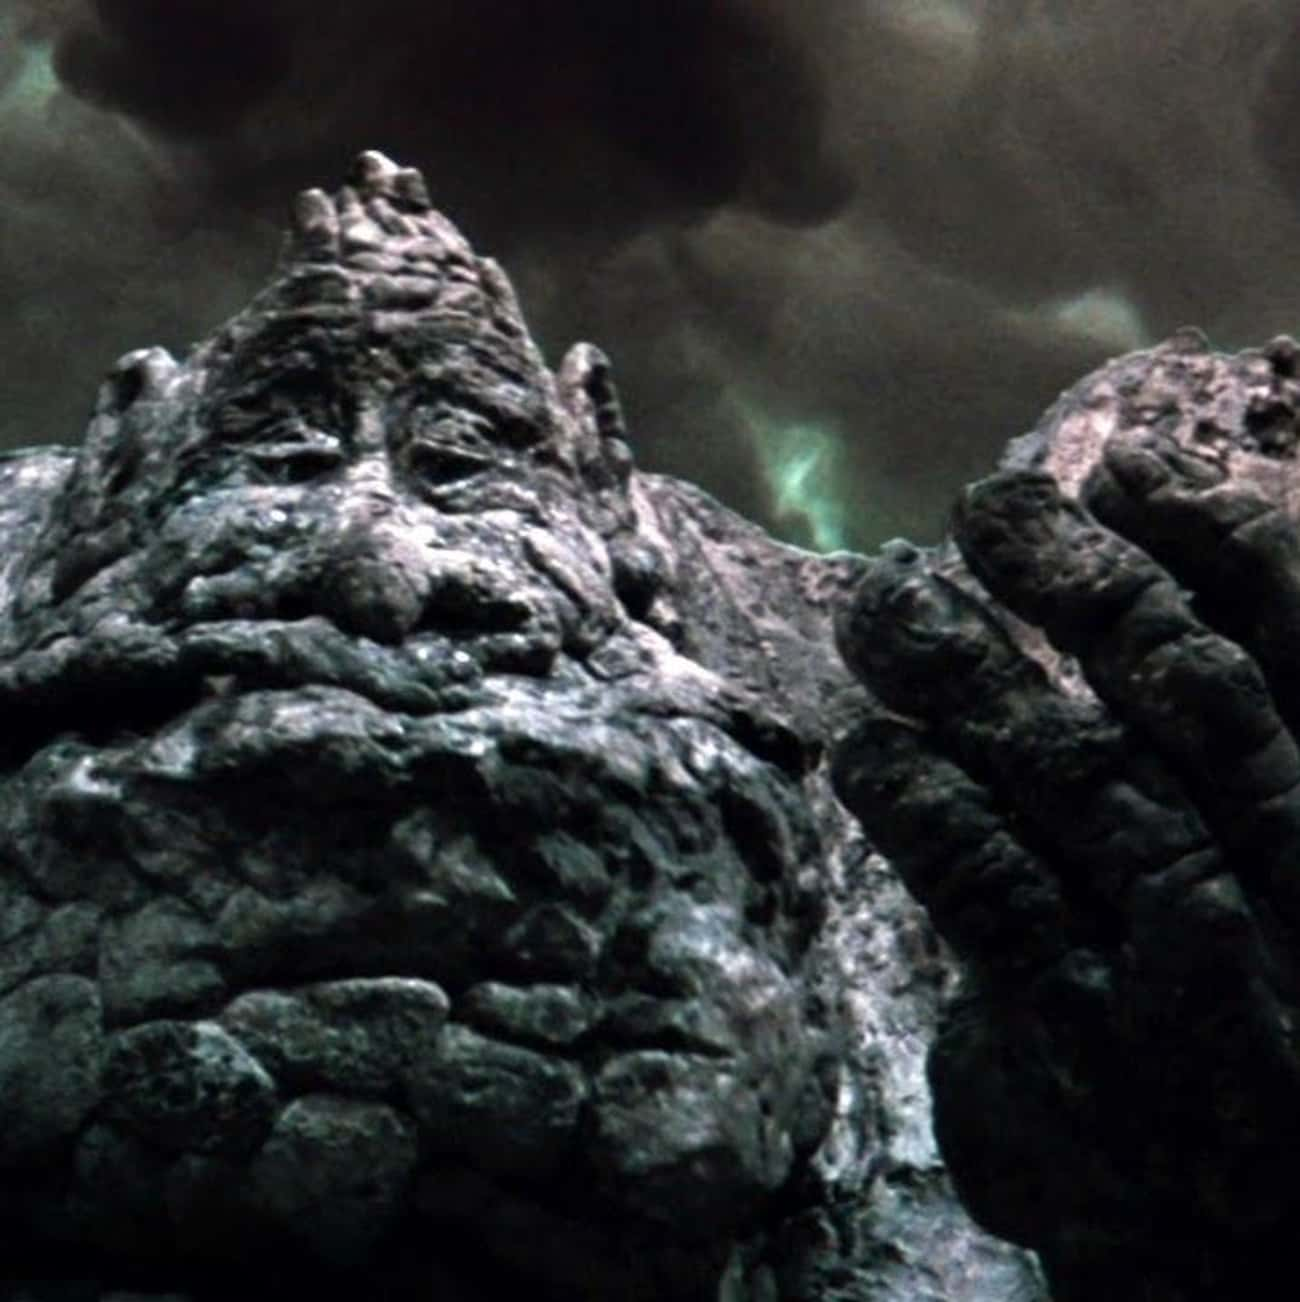 Strong Hands is listed (or ranked) 4 on the list The Most Fantastical Quotes From 'The NeverEnding Story'